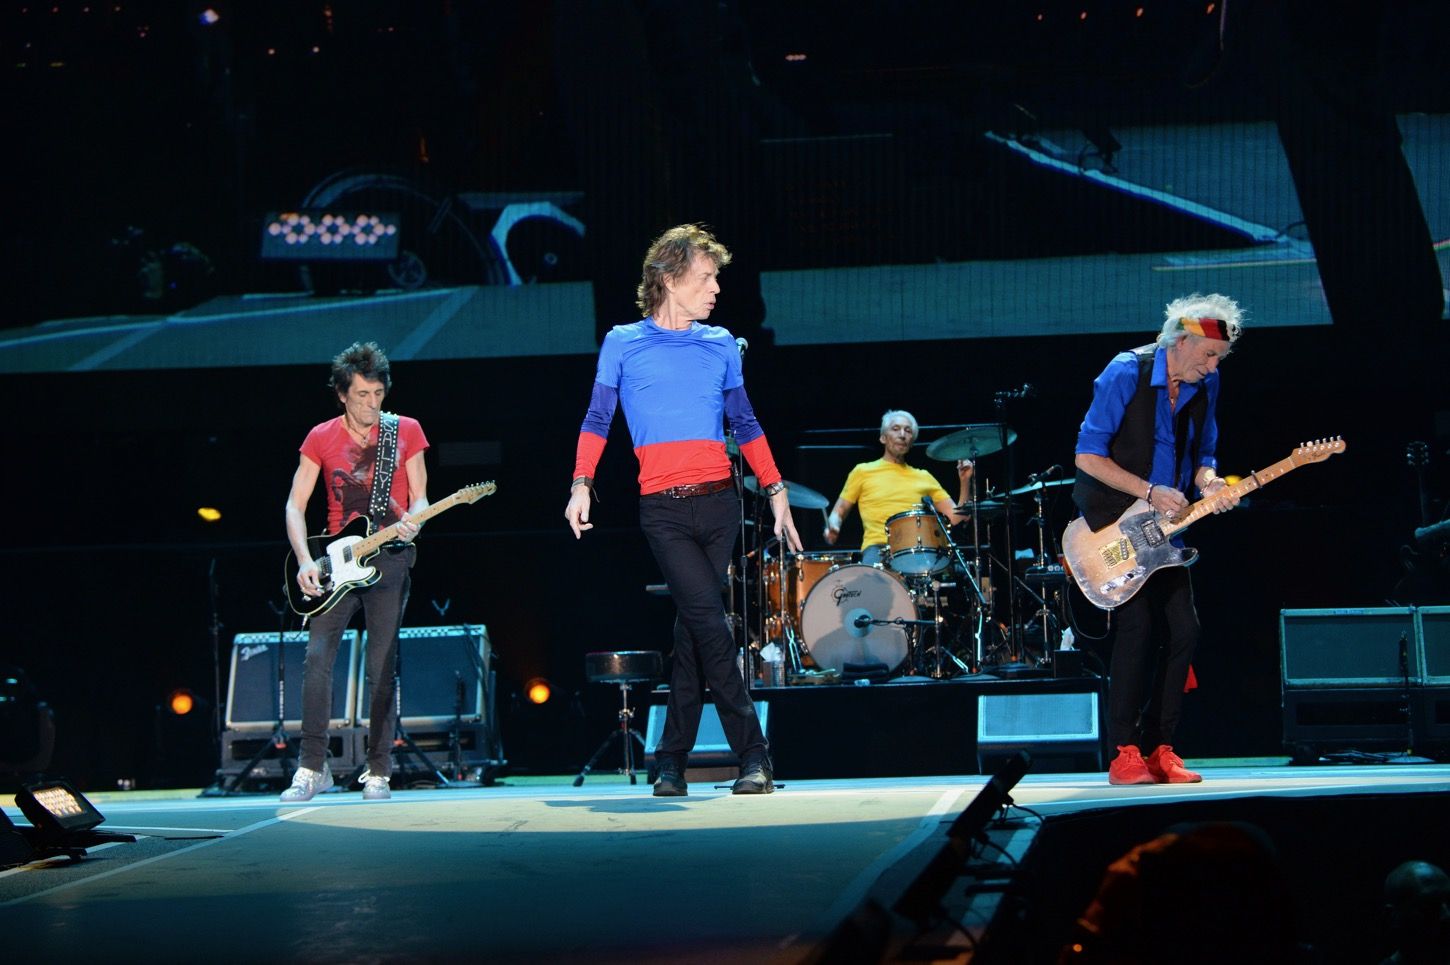 The Rolling Stones at Desert Trip at The Empire Polo Club on October 14, 2016 in Indio, California. Photo by Kevin Mazur for Desert Trip. Used With Permission.